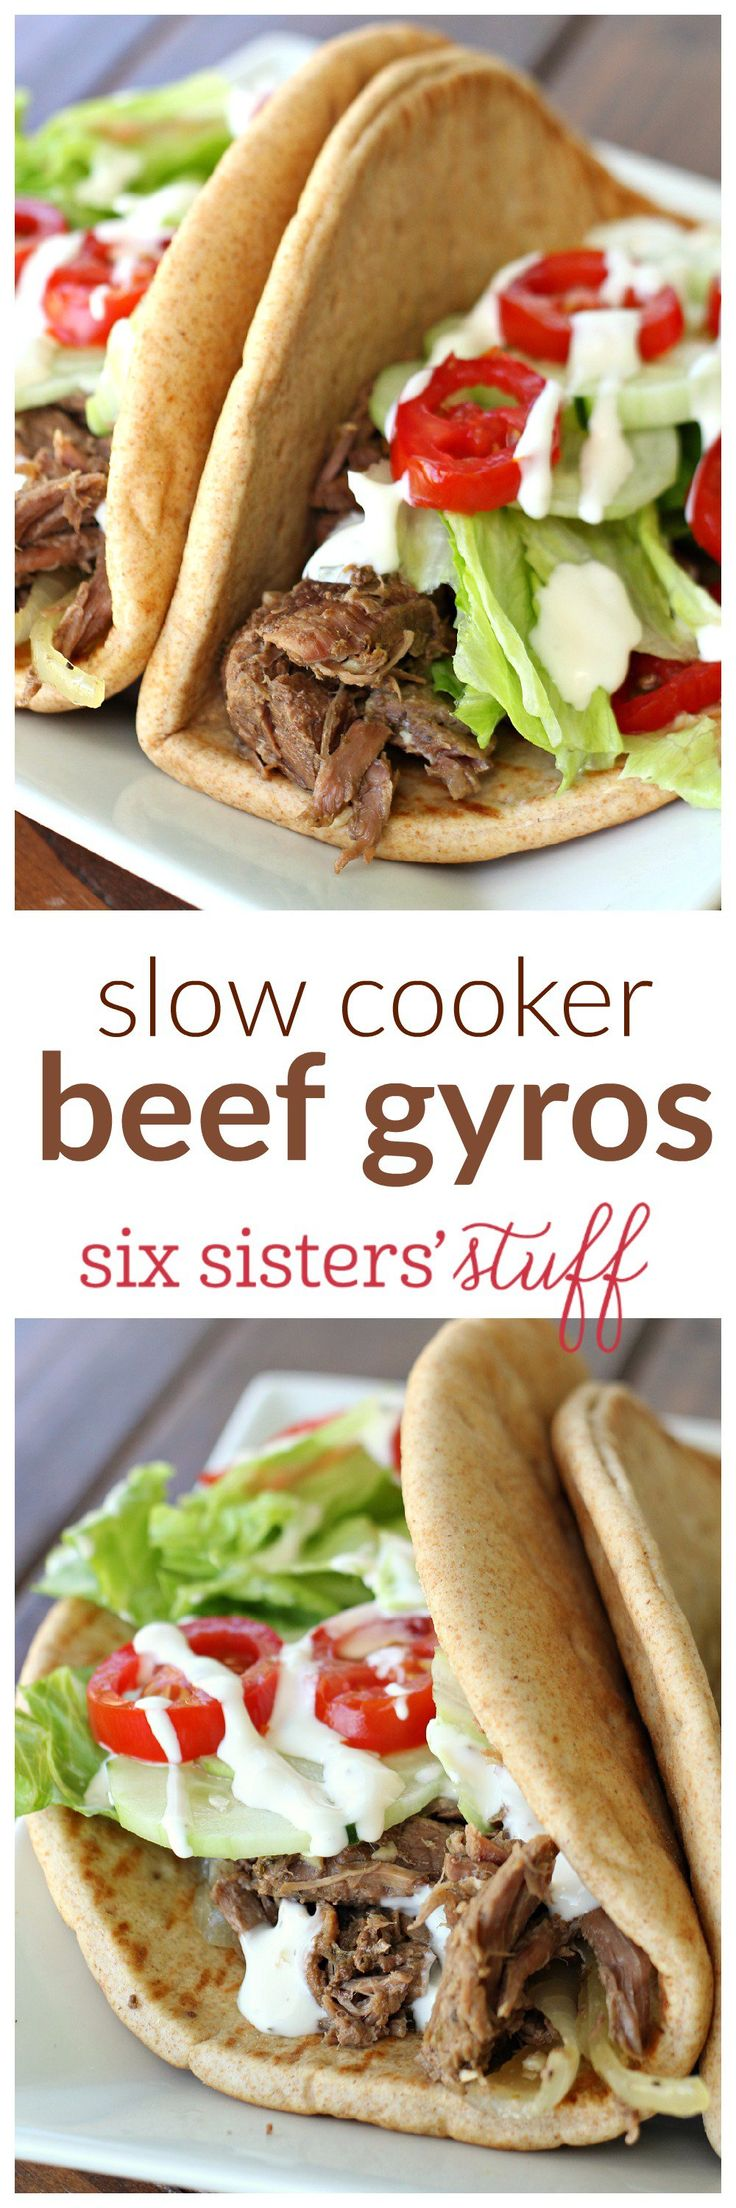 Slow Cooker Beef Gyros on SixSistersStuff.com - so easy and delicious!